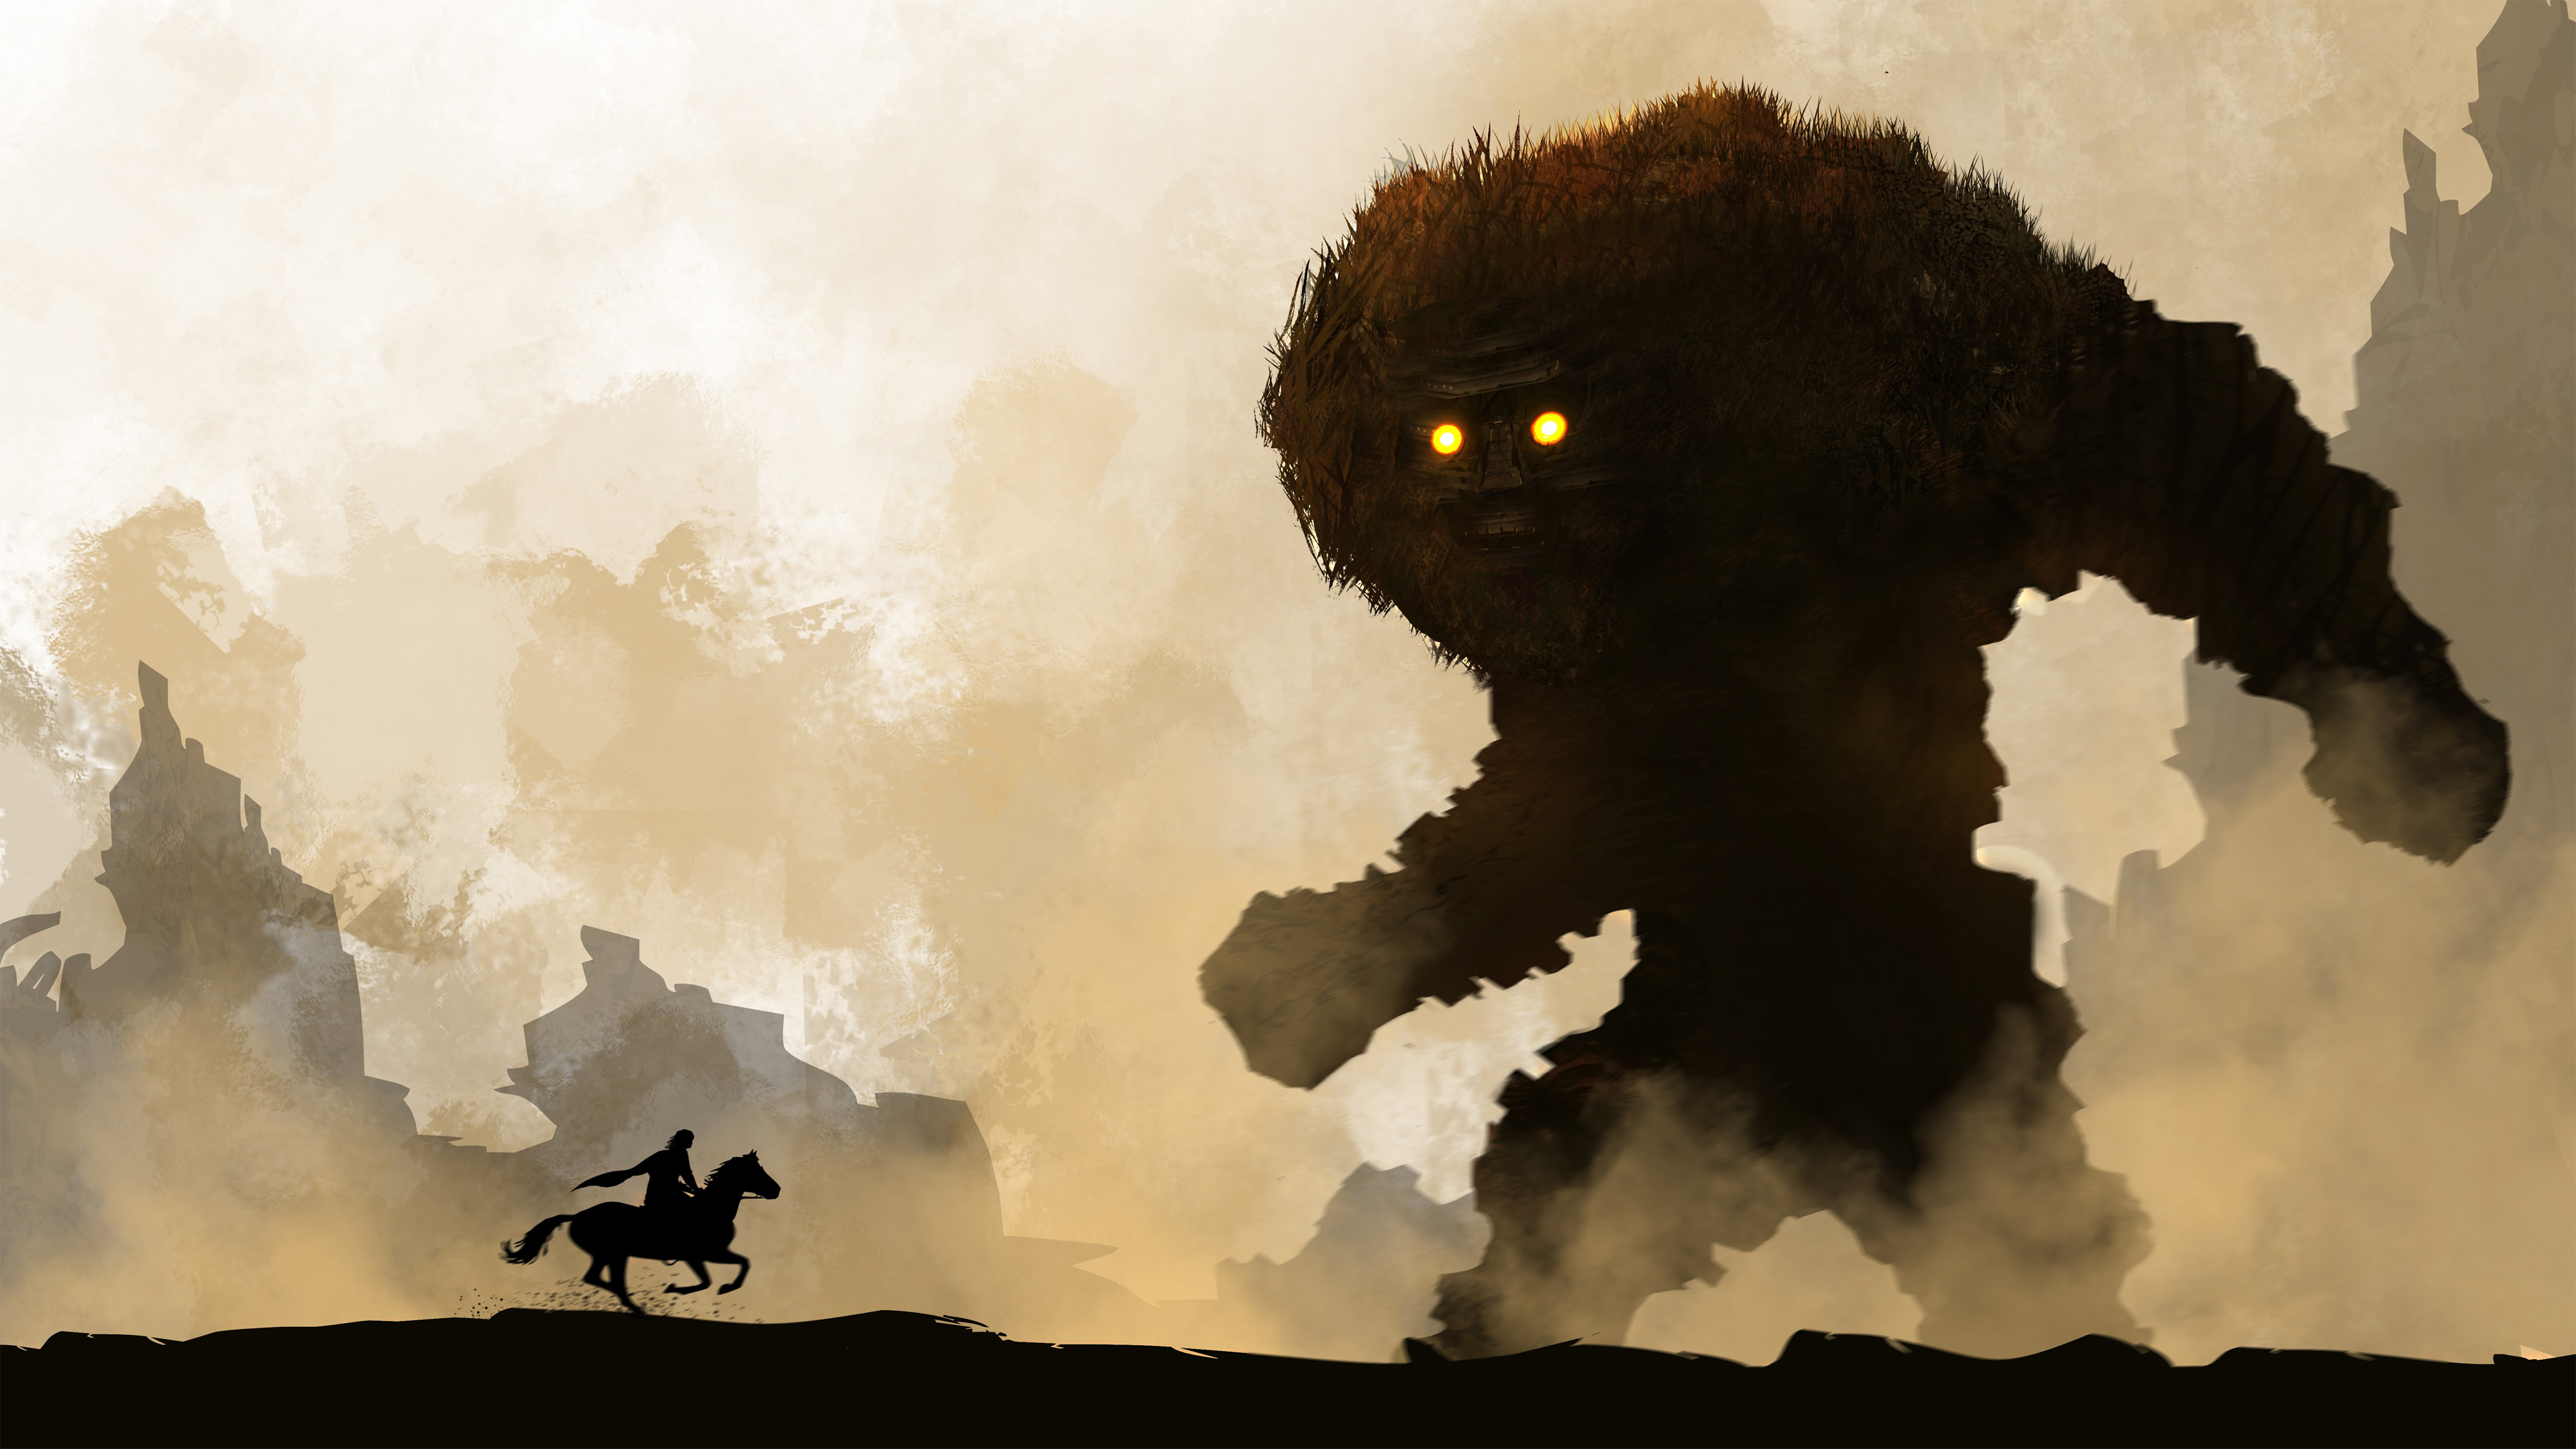 Resultado de imagen de shadow of the colossus wallpaper